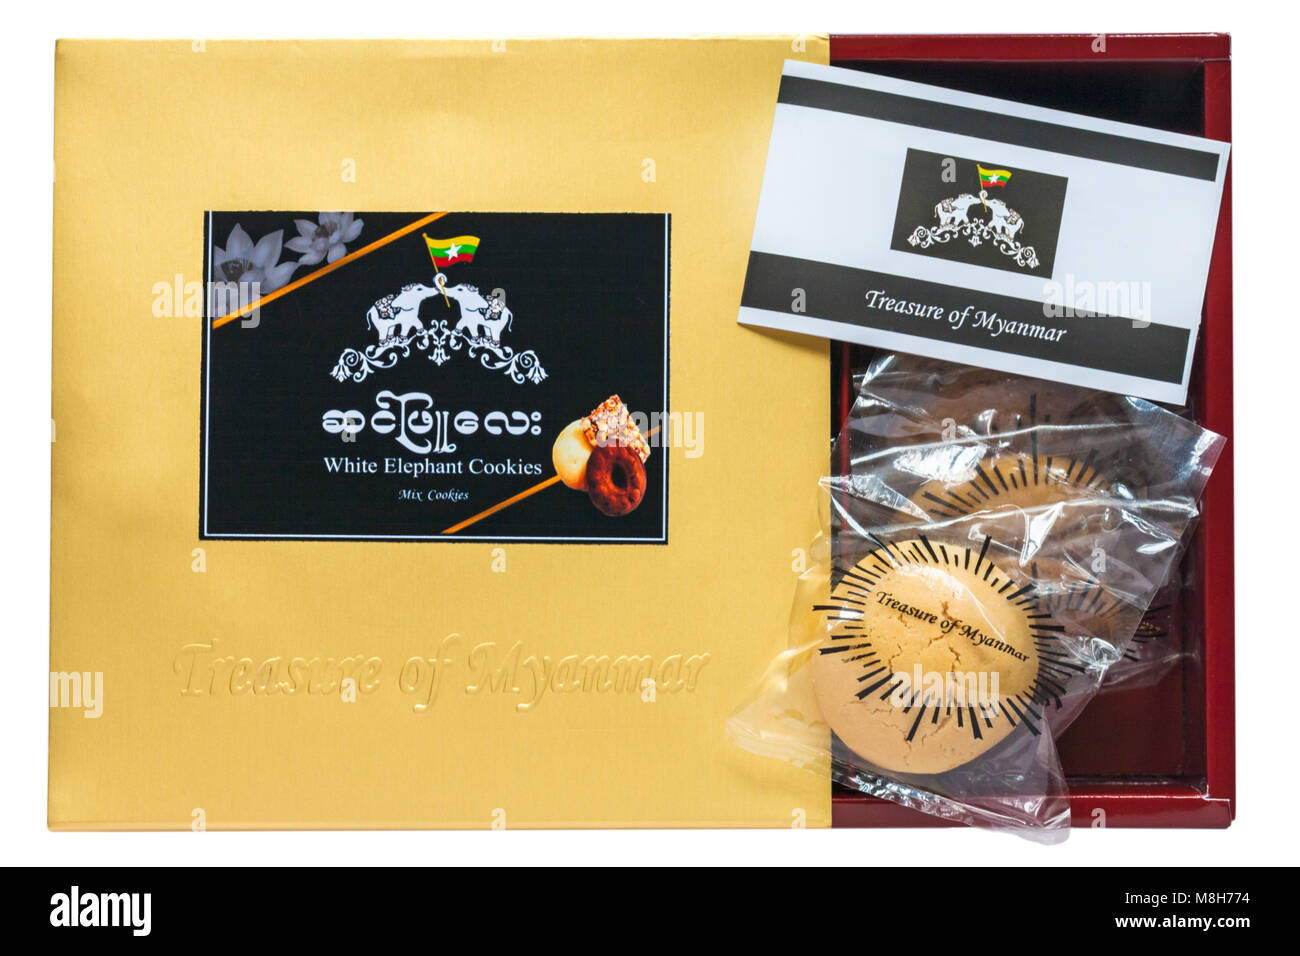 Box of Treasure of Myanmar white elephant cookies opened to show contents set on white background Stock Photo